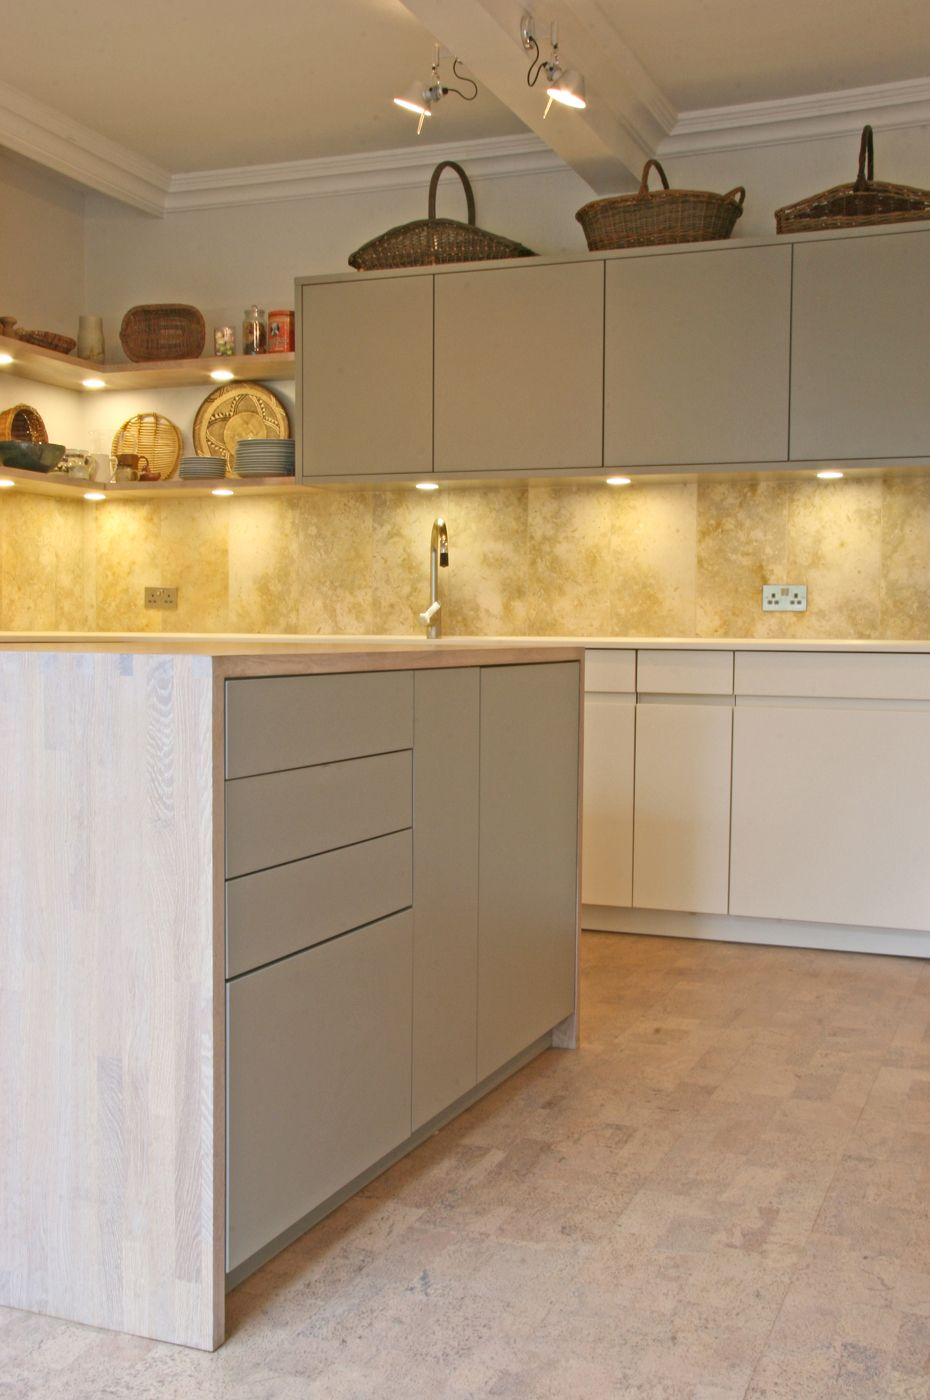 best options for kitchen flooring cork kitchen flooring Kitchen Cork flooring